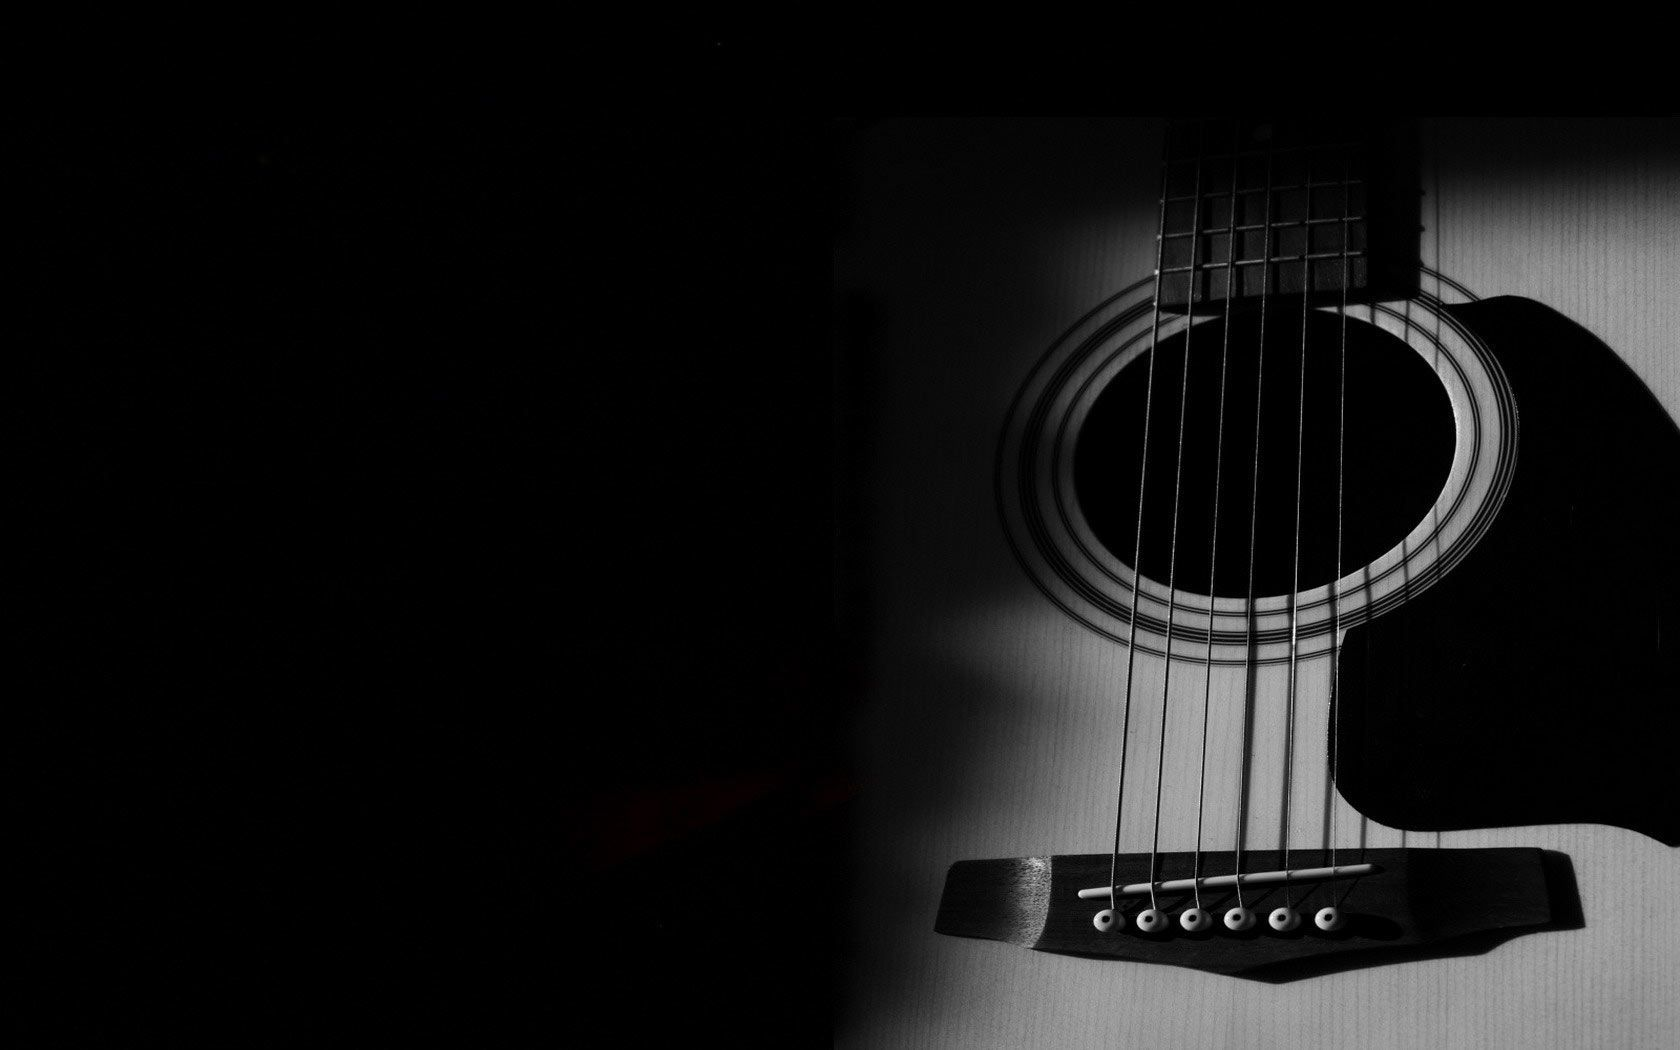 Guitar Wallpaper Hd For Desktop 1680 X 1050 Px 53005 KB Acoustic Facebook Cover Ephiphone Fender Red Black And White Gibson